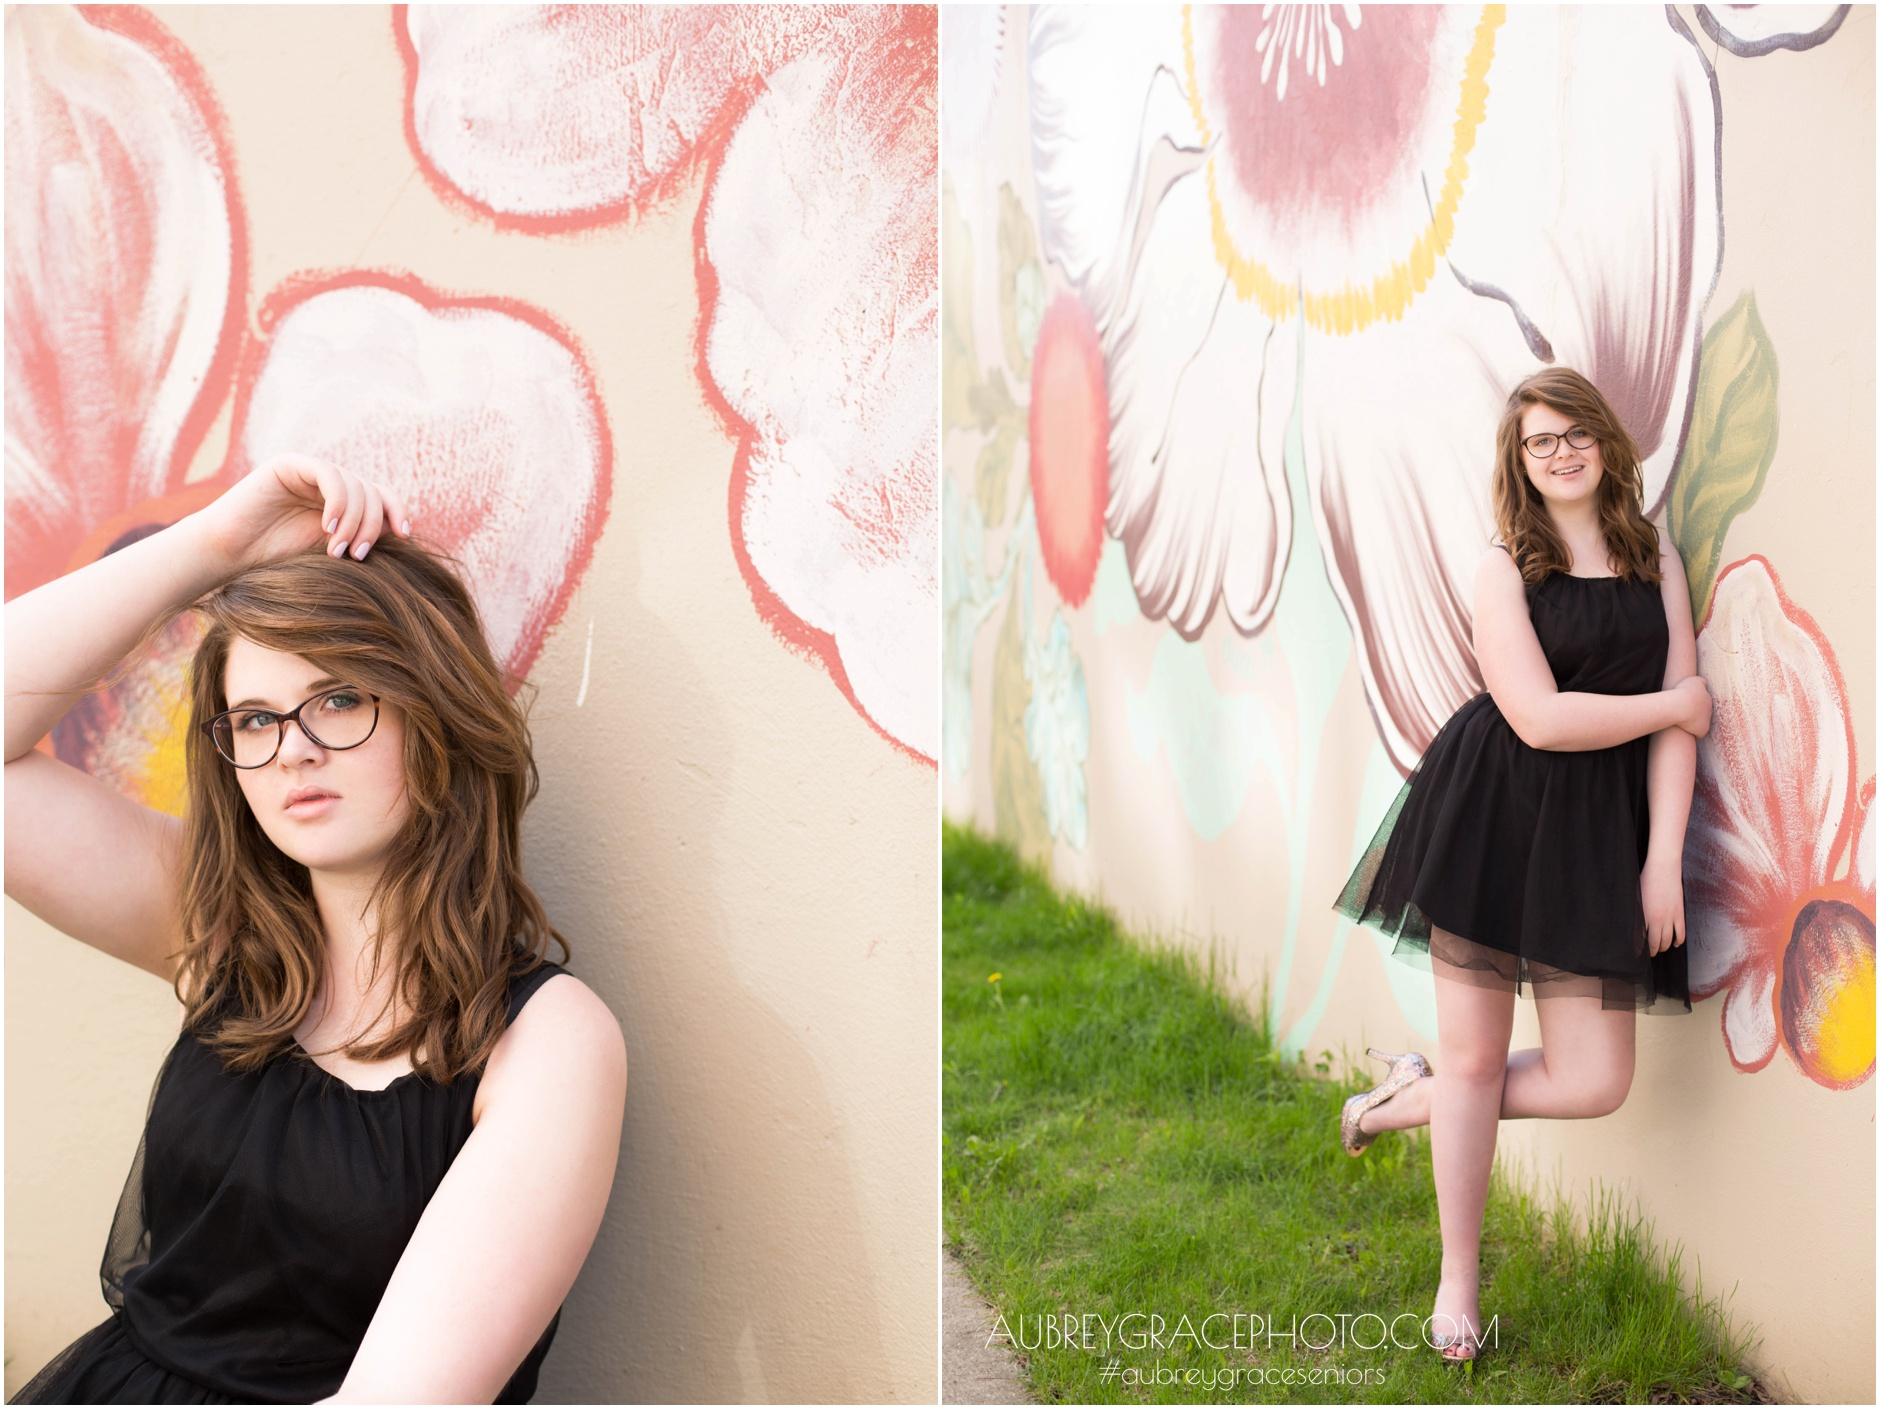 Aubrey Grace Photography high school seniors